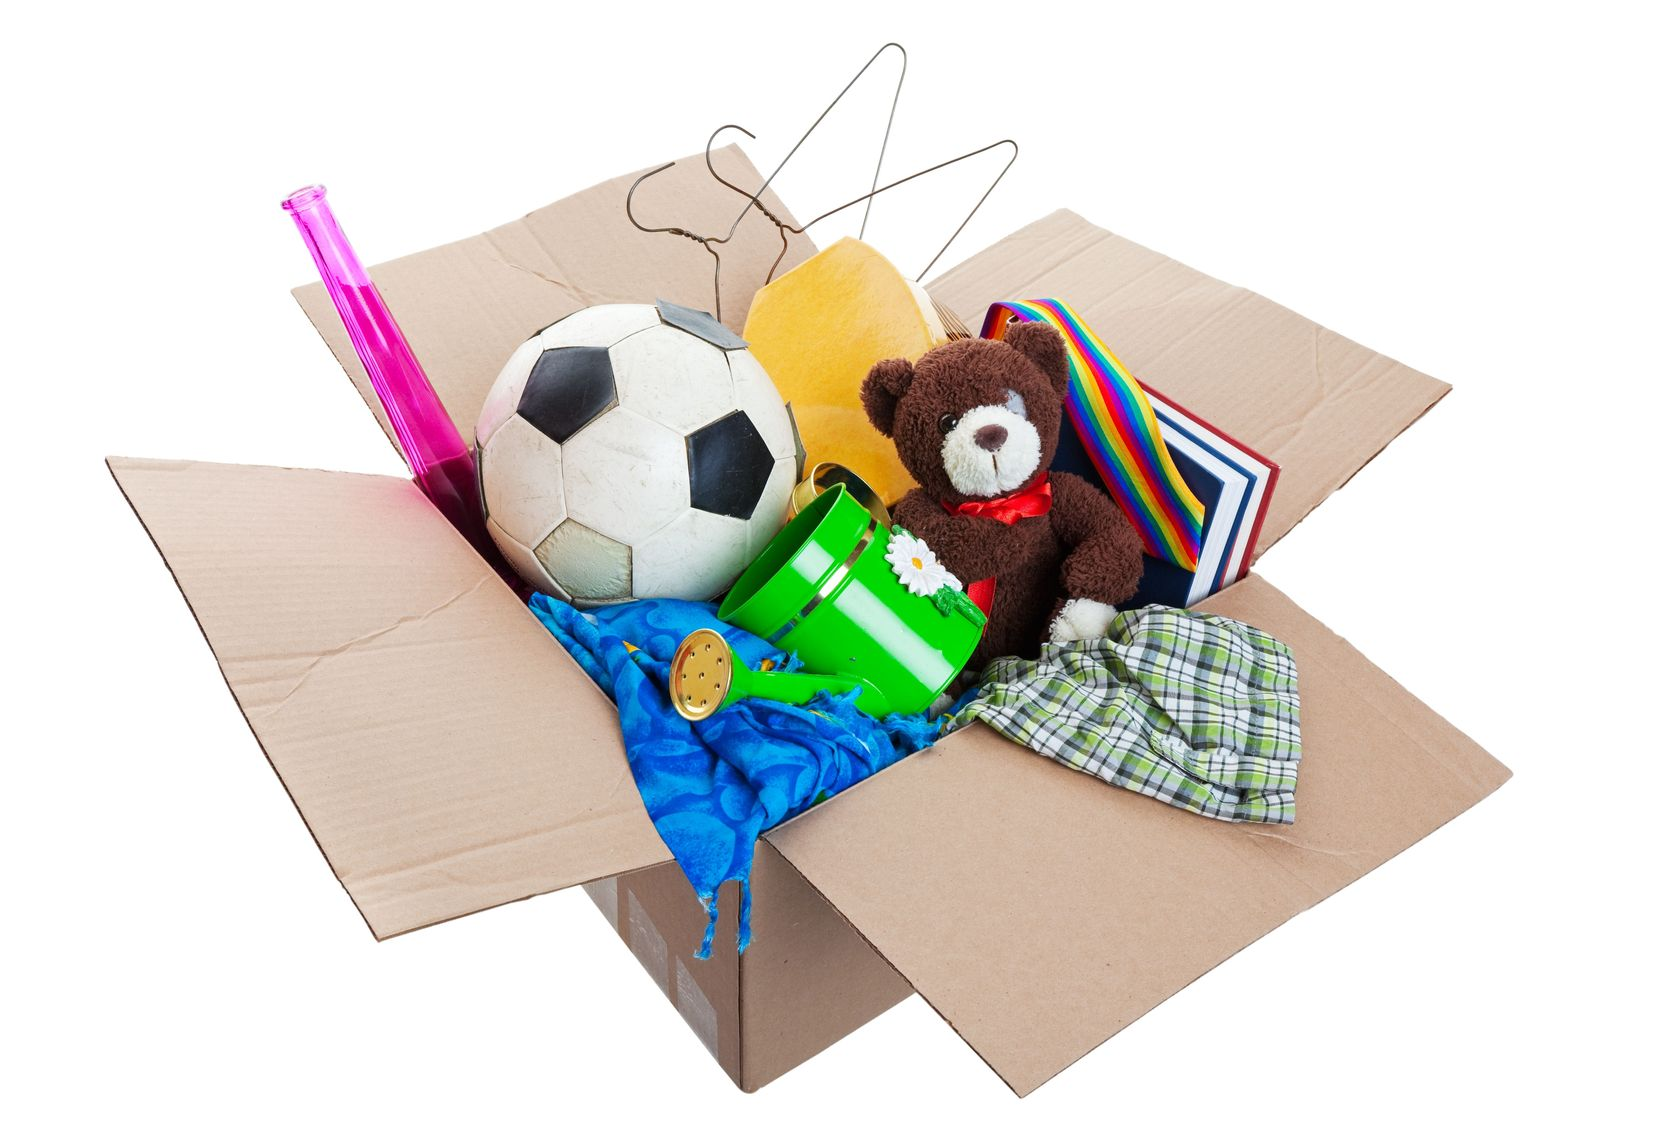 If your kids have boxes of stuff all over, help them purge and decide what's important to keep